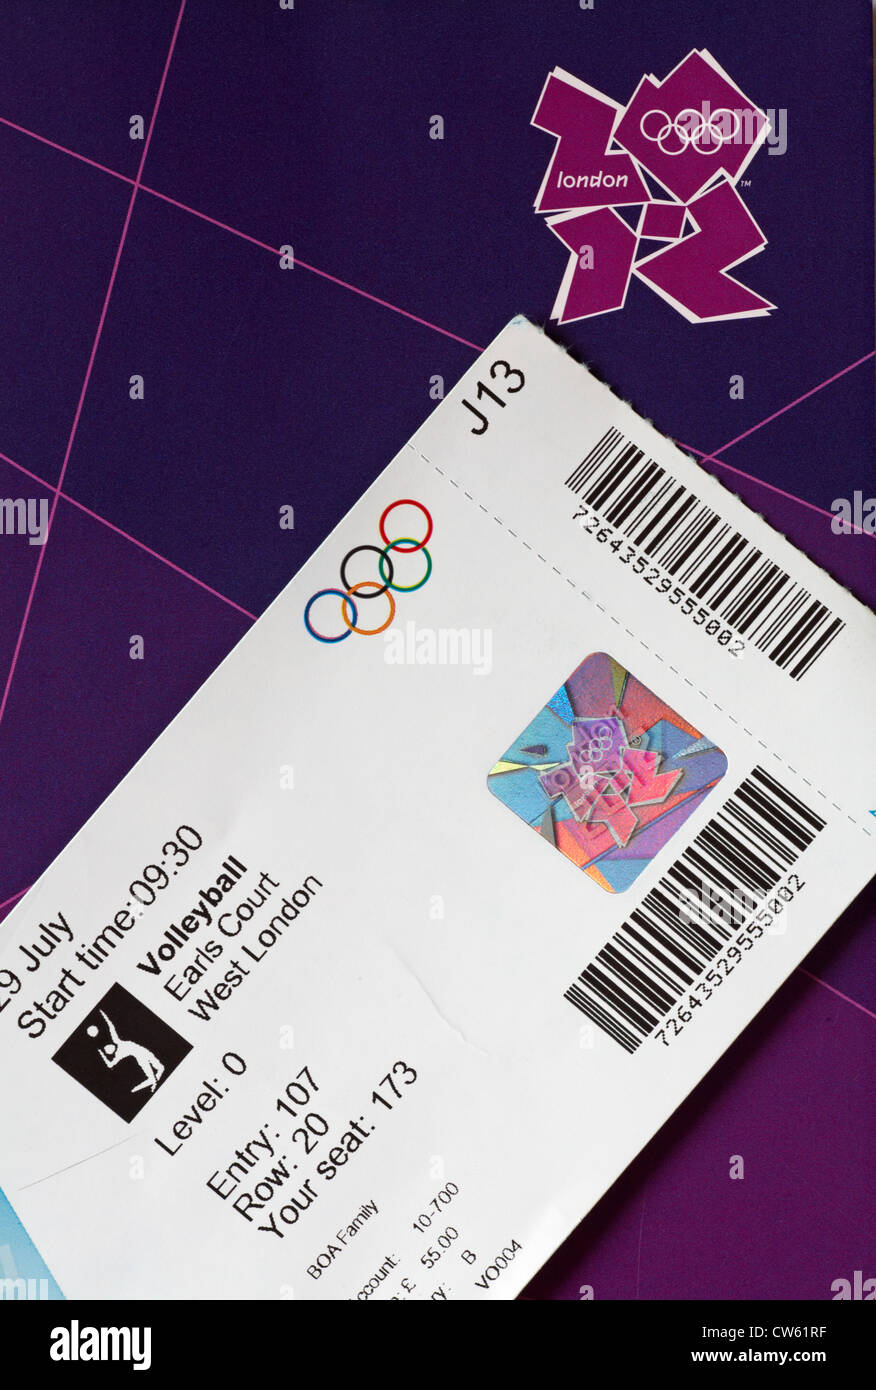 Olympic games ticket to watch volleyball match at Earls Court - Stock Image